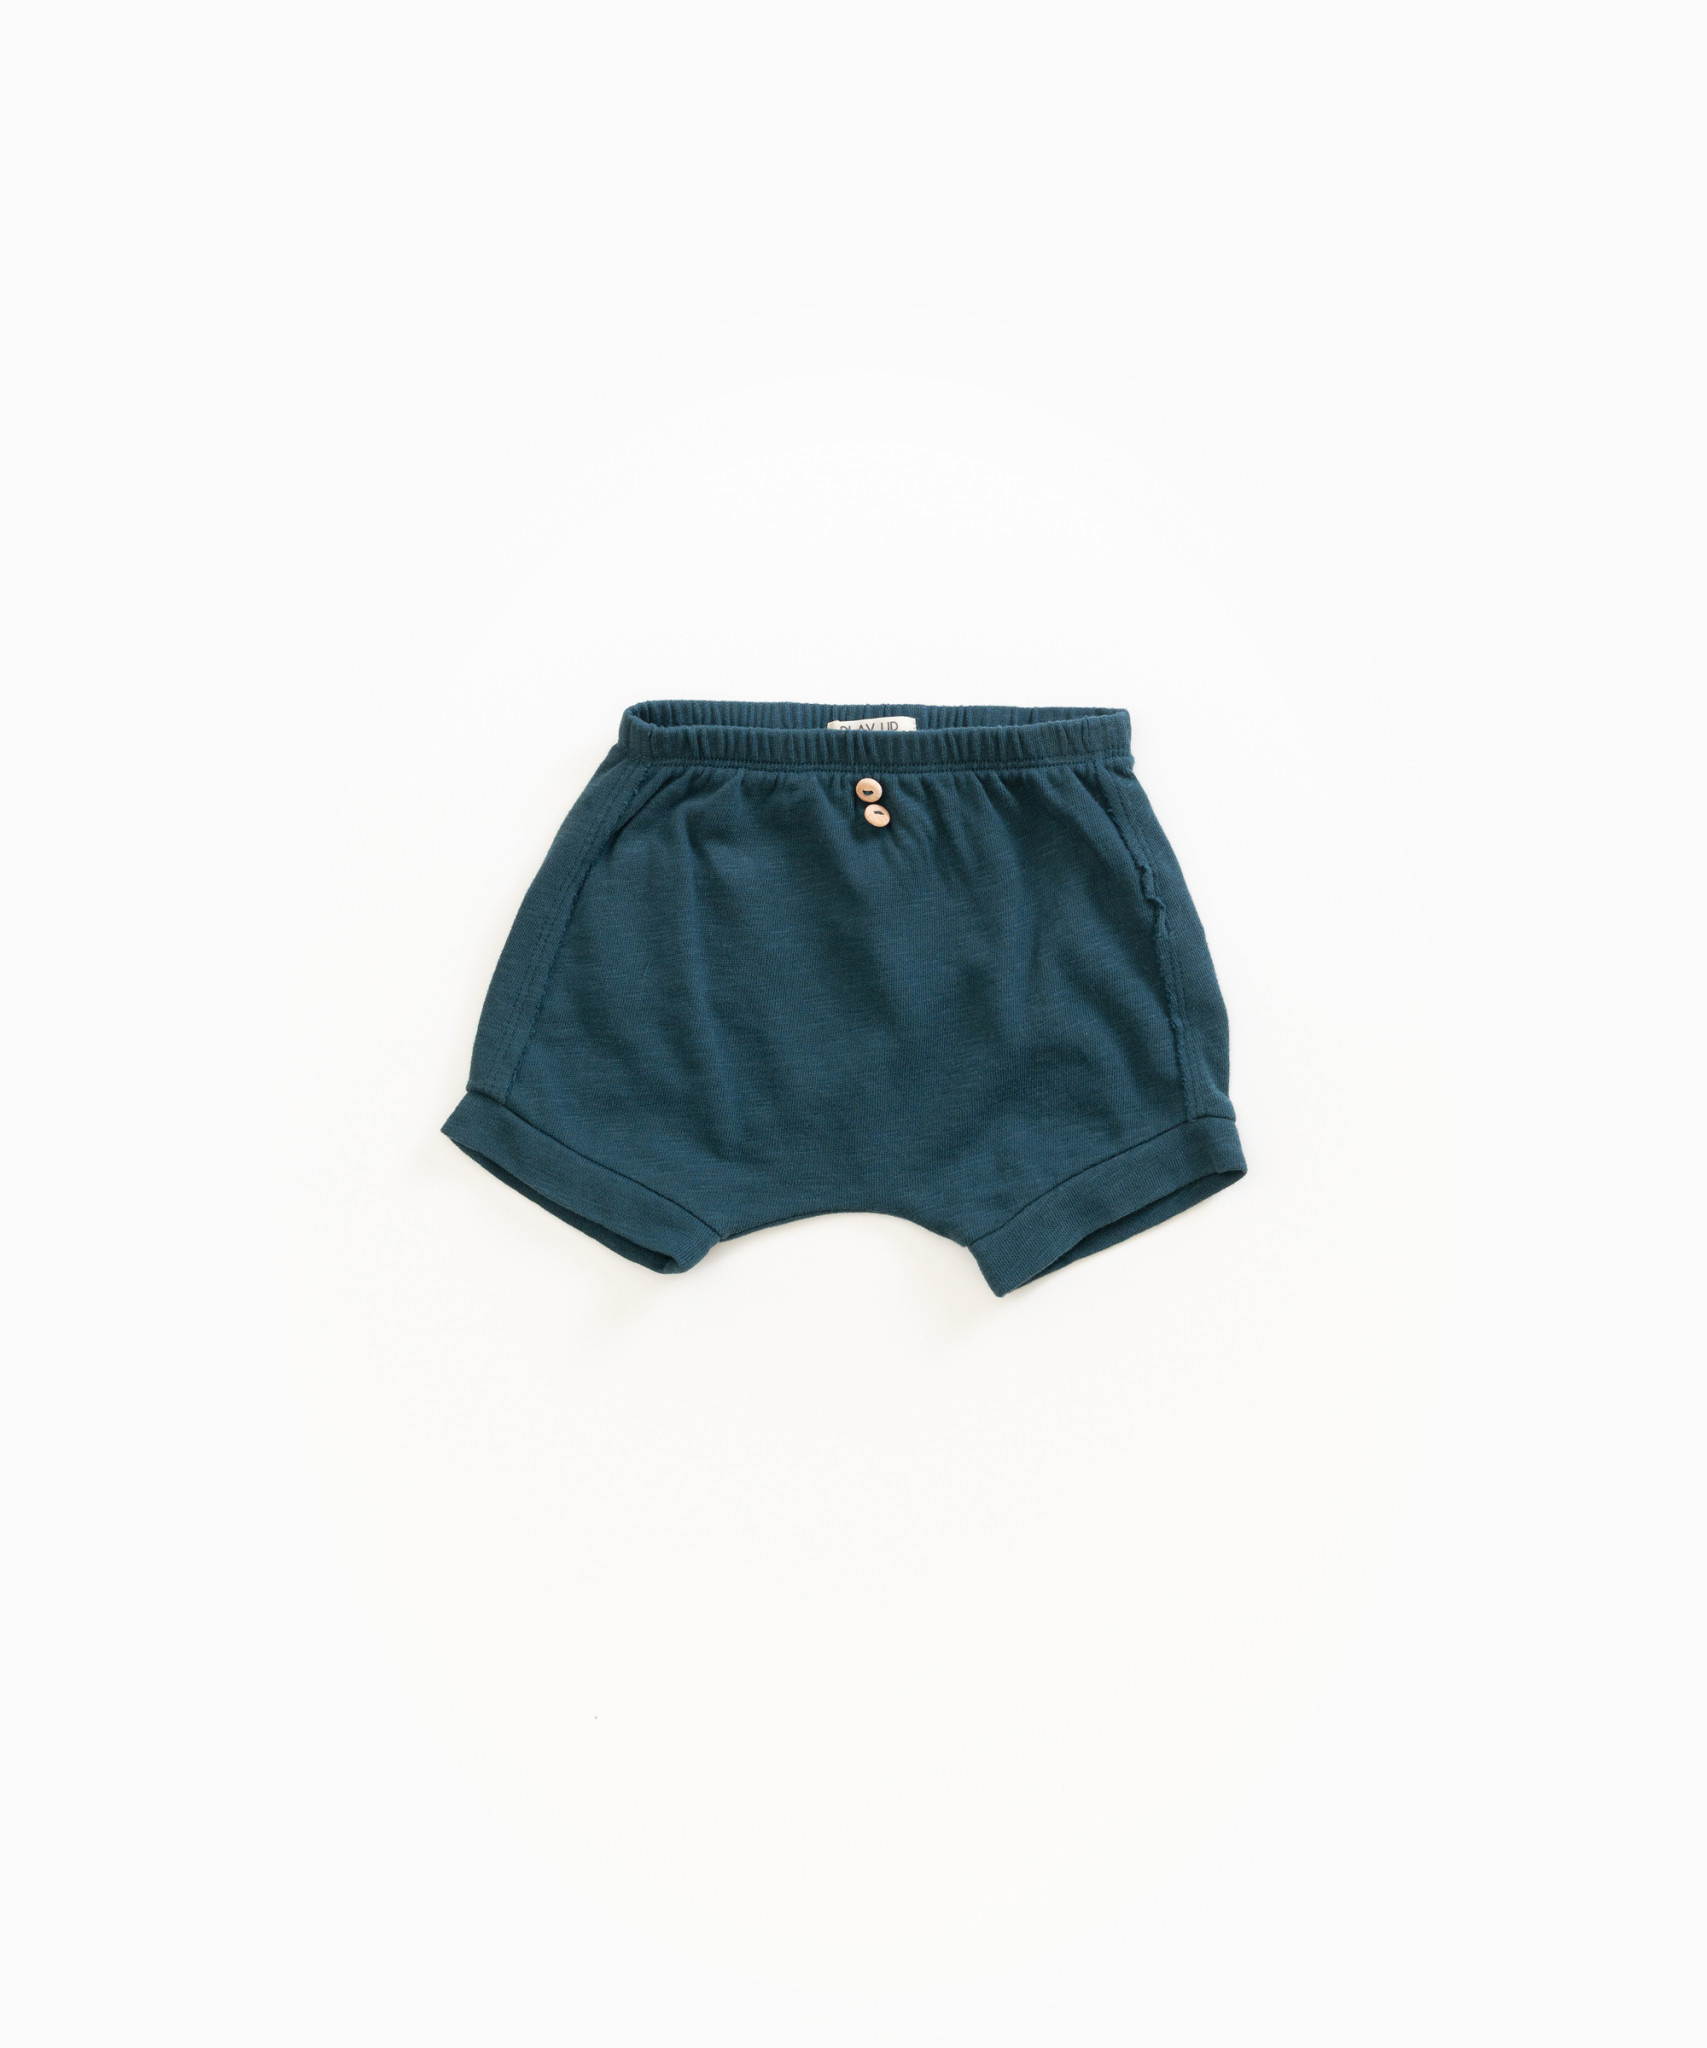 Play-up Shorts with pocket in organic cotton |Deep